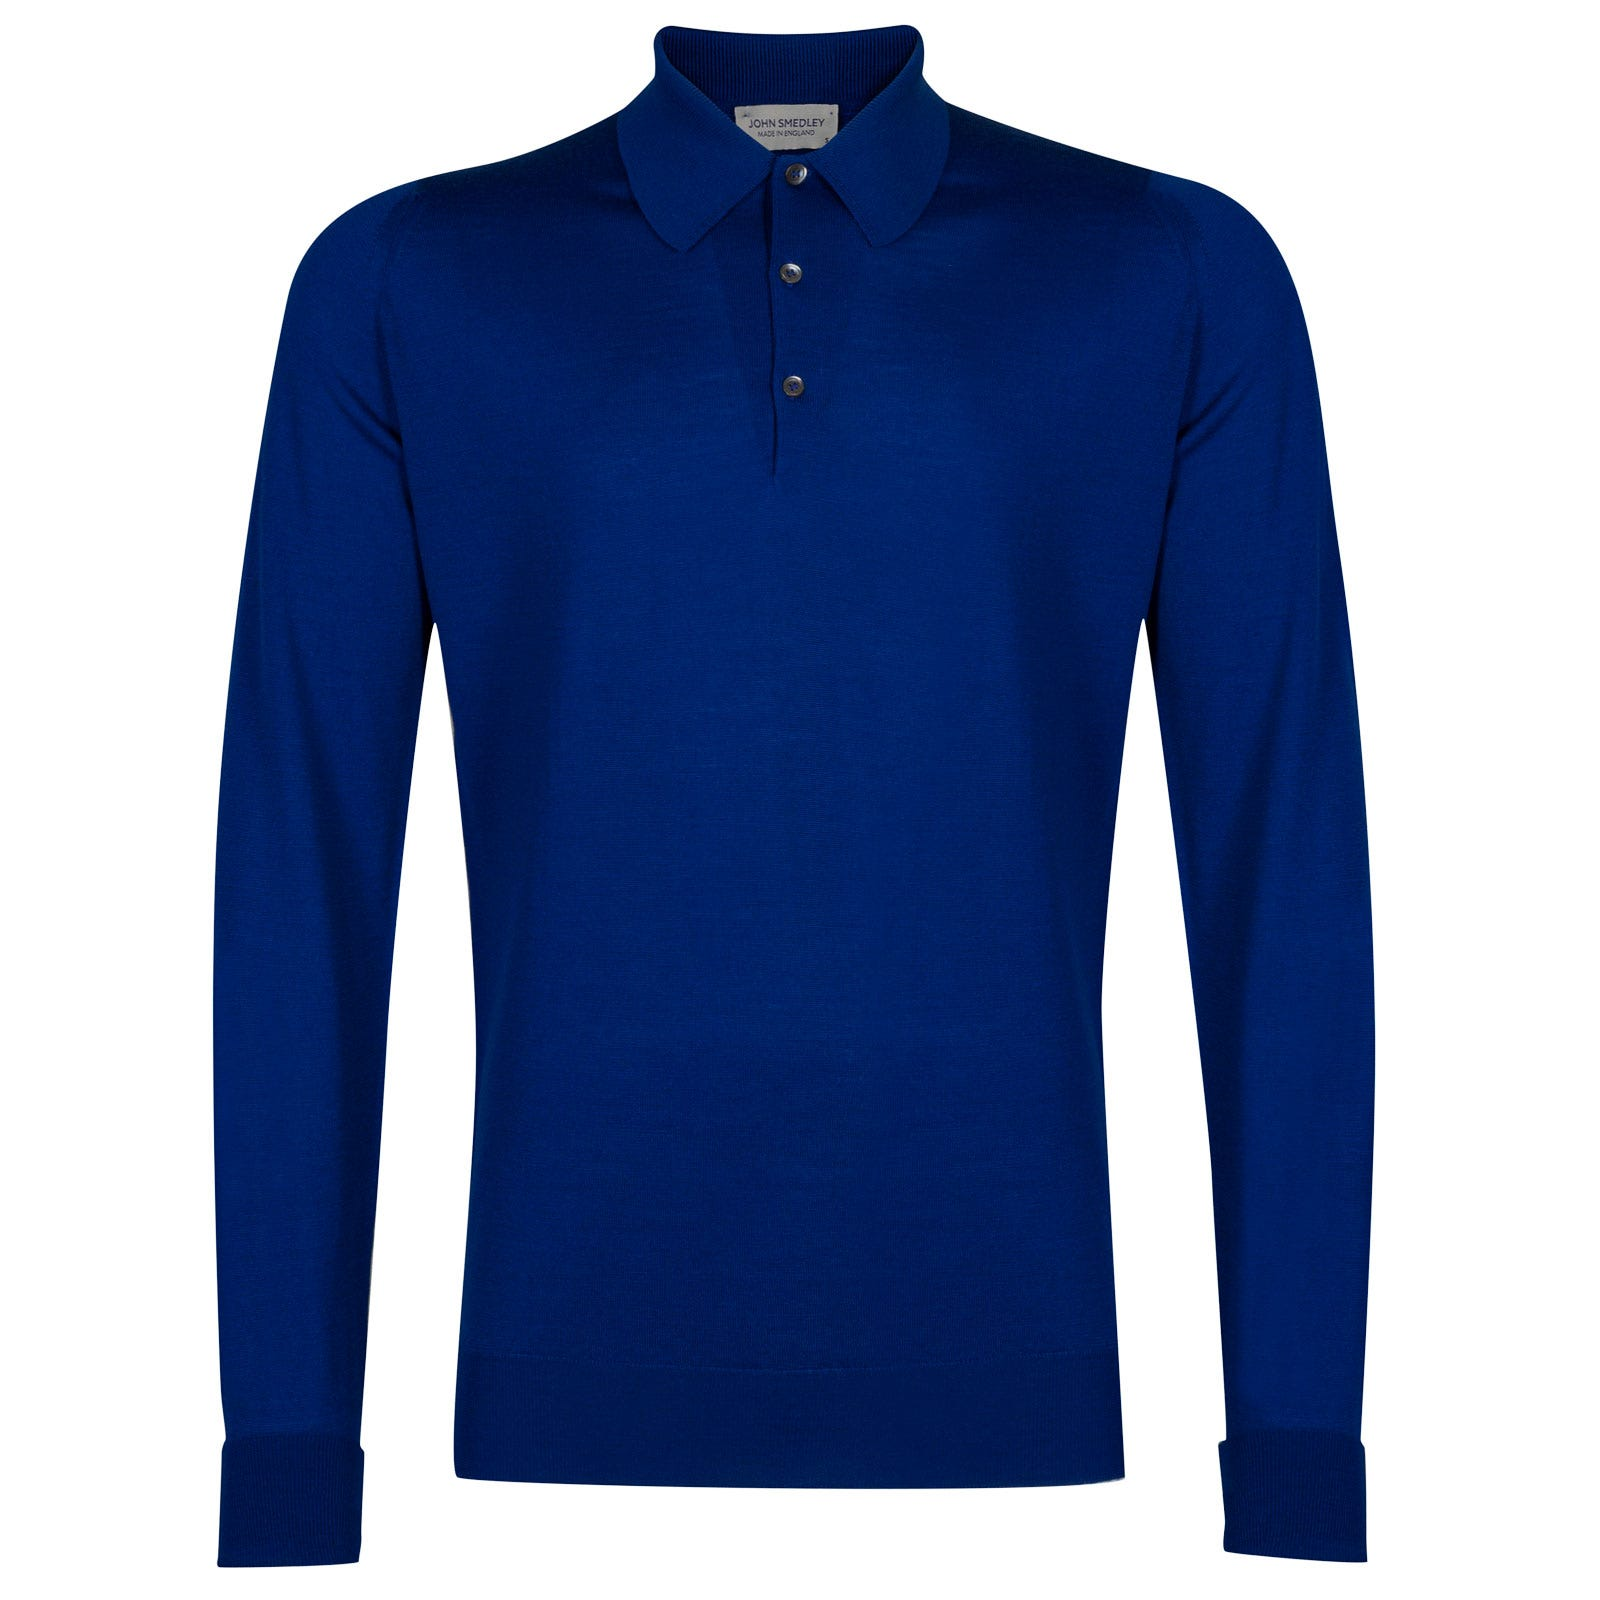 John Smedley dorset Merino Wool Shirt in Coniston Blue-L